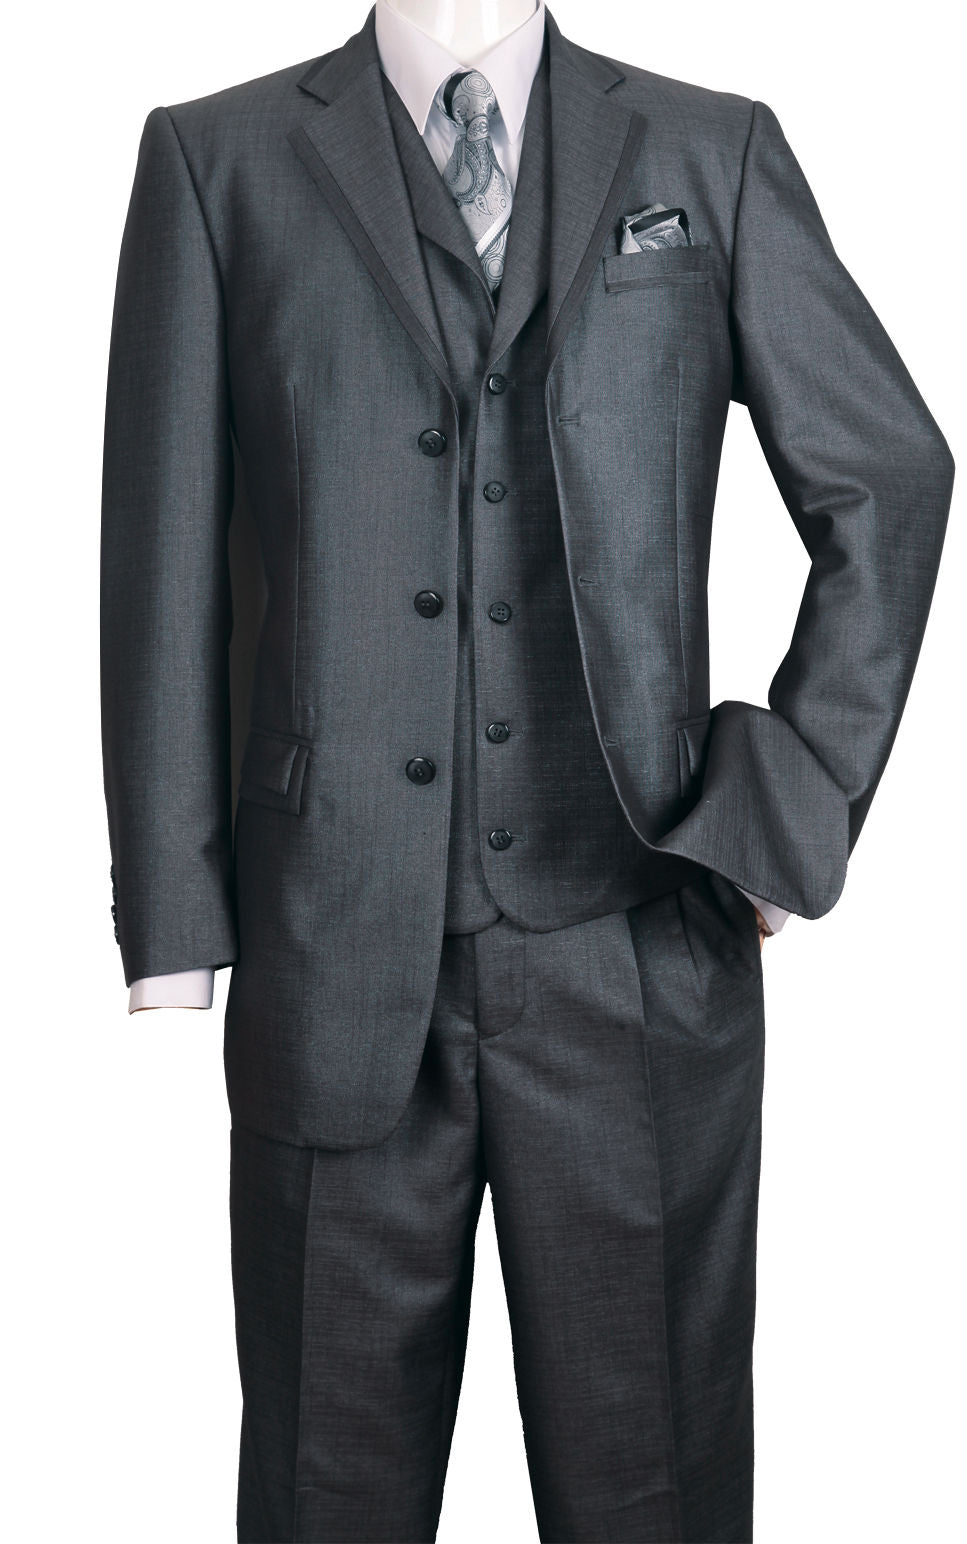 Fortino Landi Men Suit 5909V-Black - Church Suits For Less